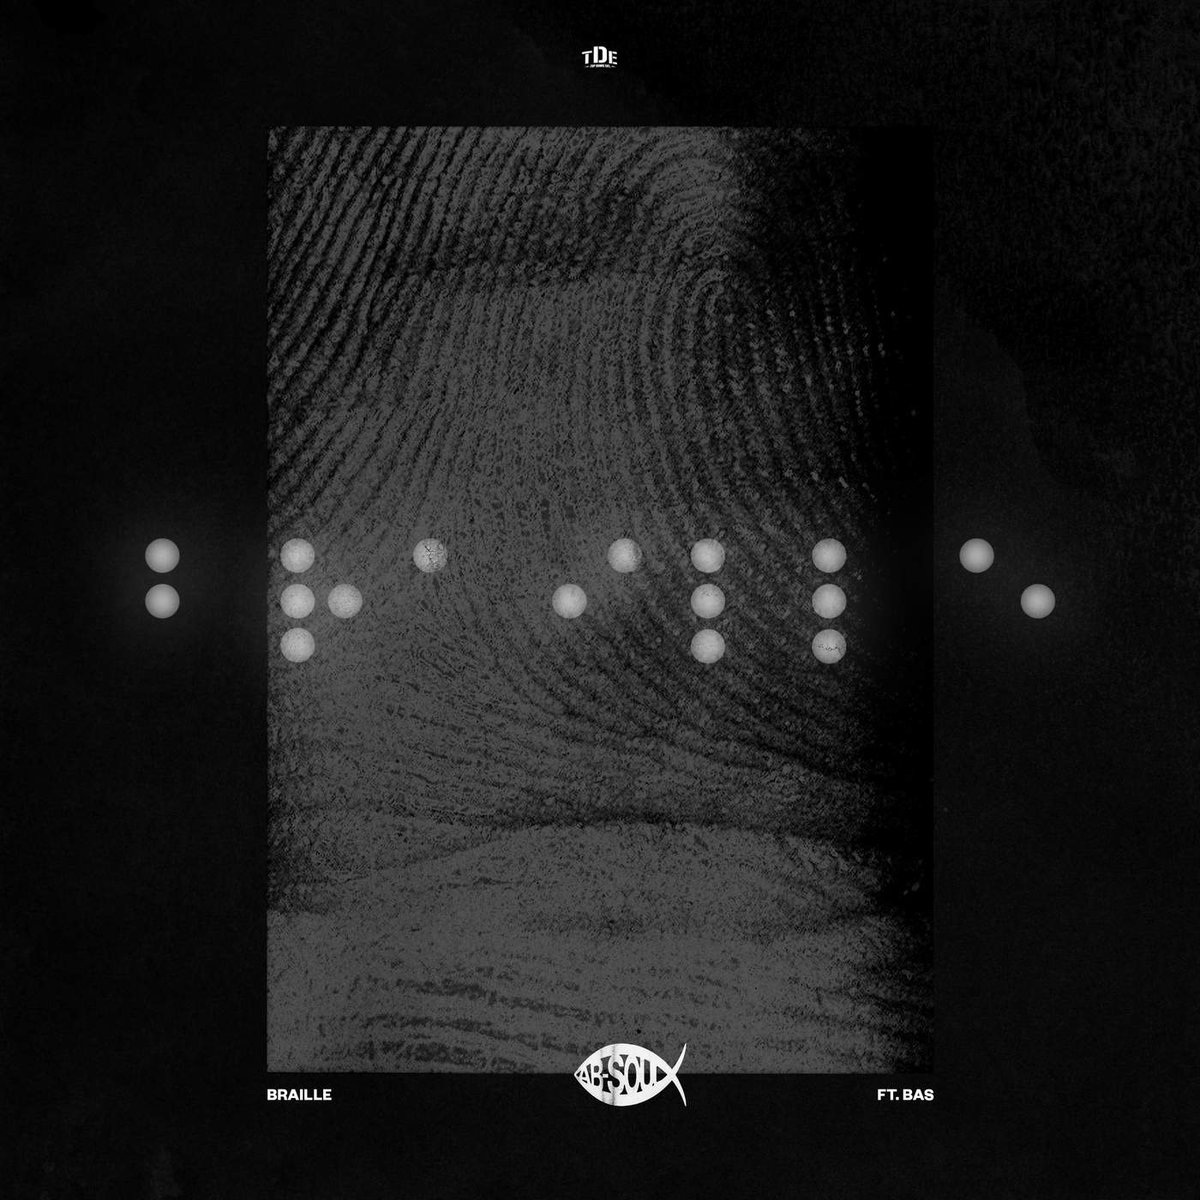 New Music: Ab-Soul – Braille (Ft. Bas)